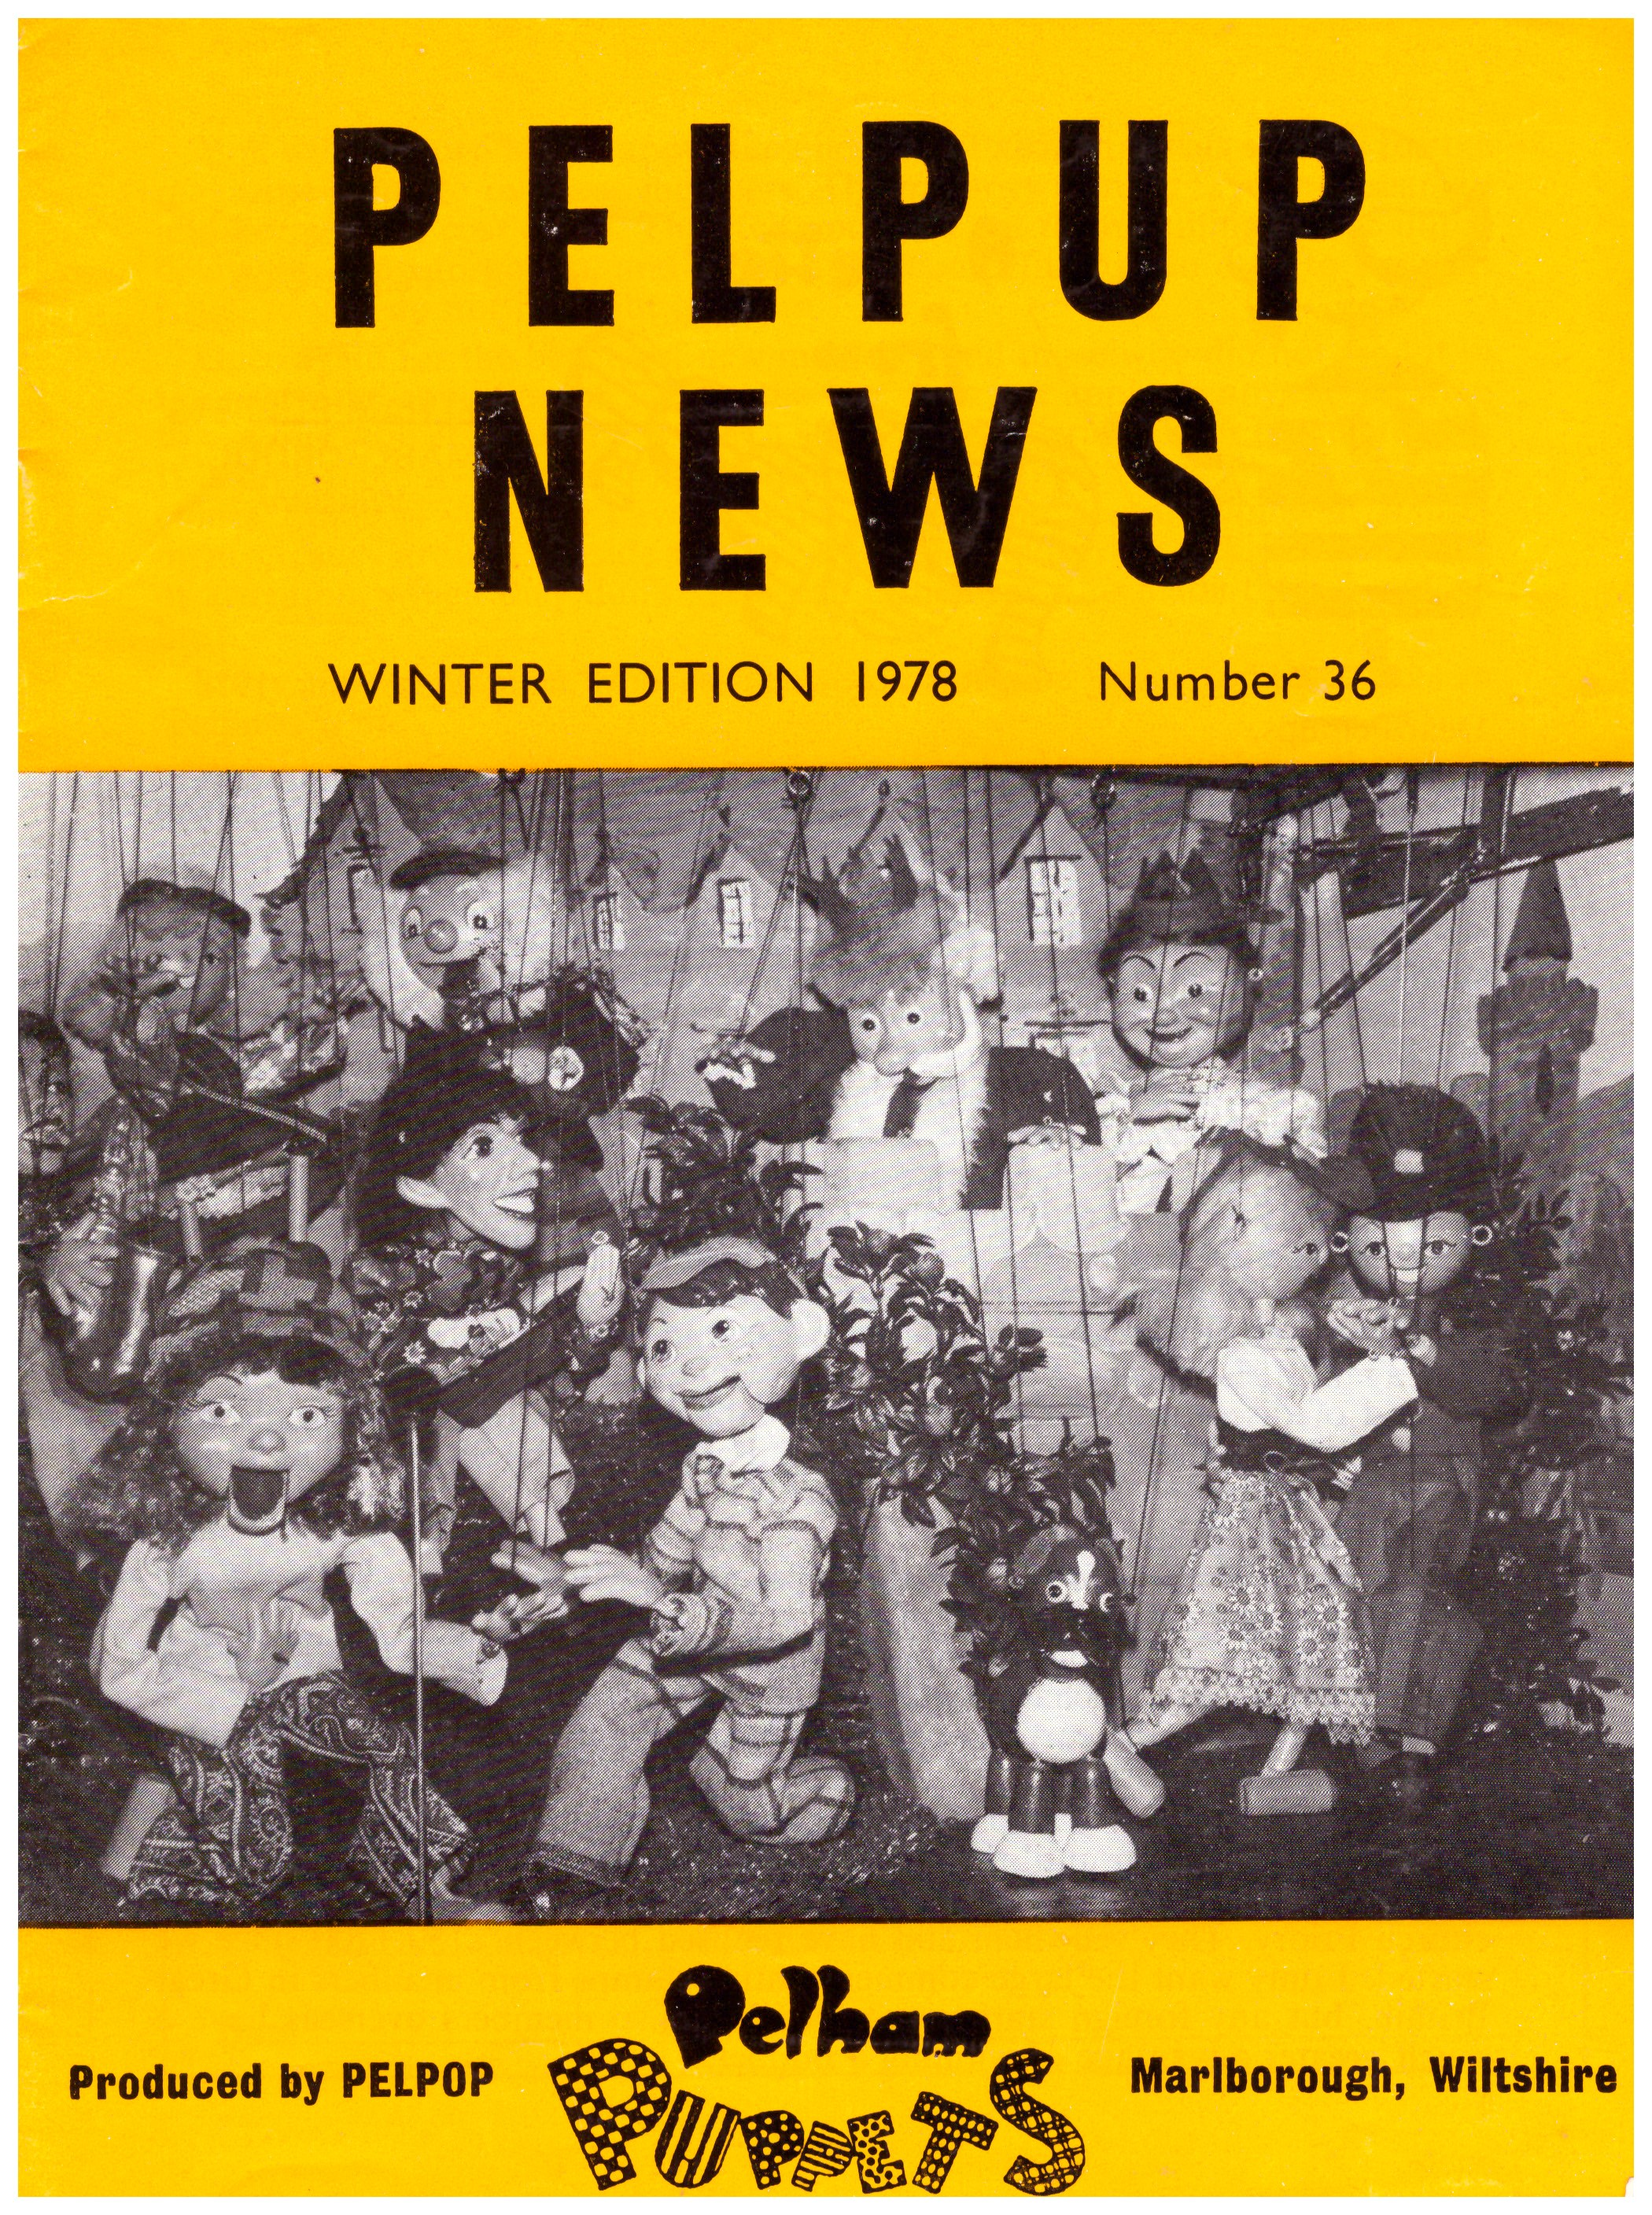 Winter Edition 1978 - Number 36